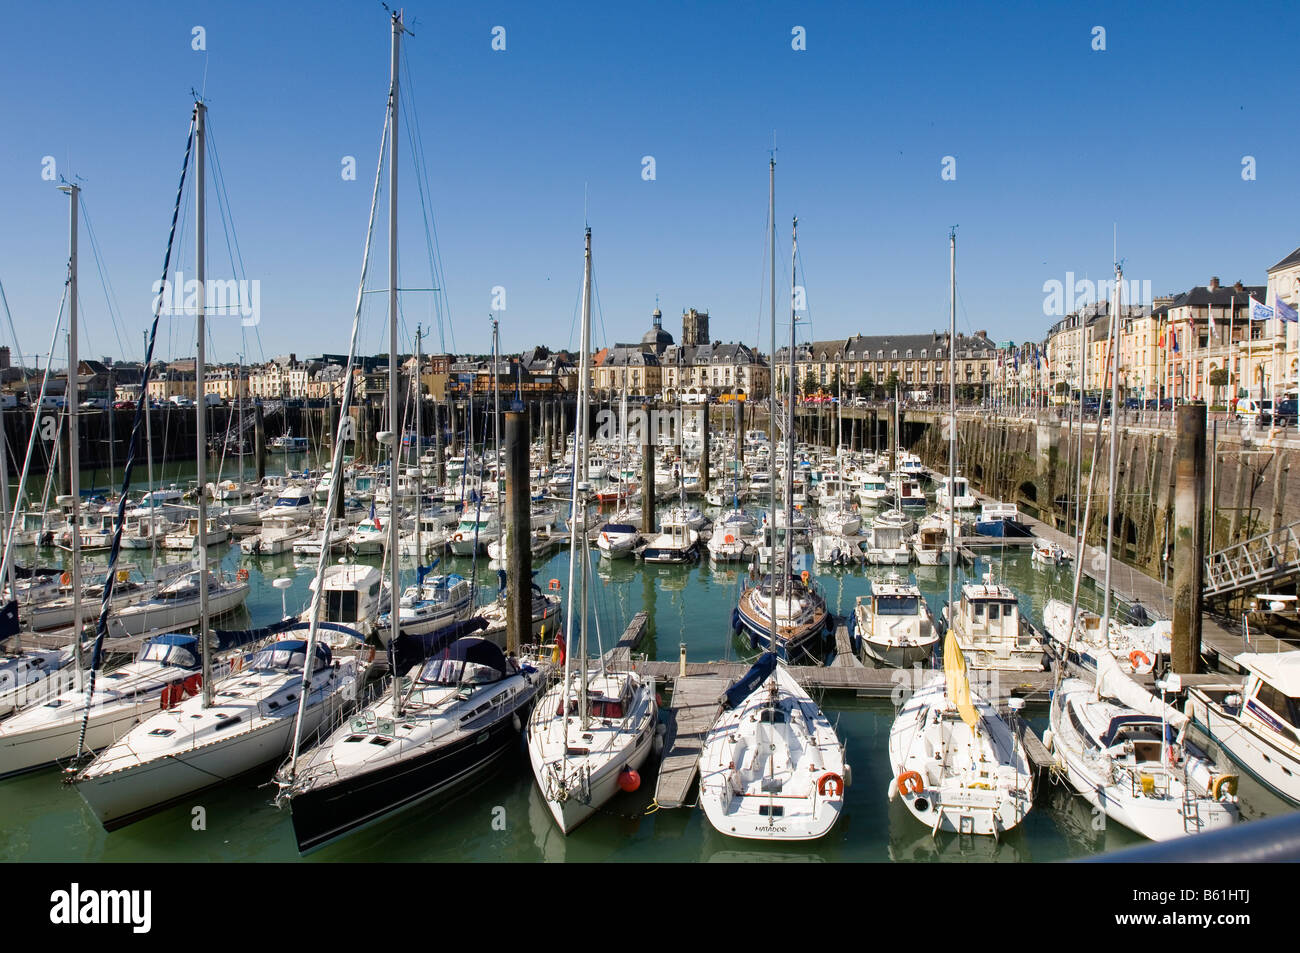 The tidal dependent part of the harbour, surrounded by houses of the historic town centre, yachts in the harbour, - Stock Image